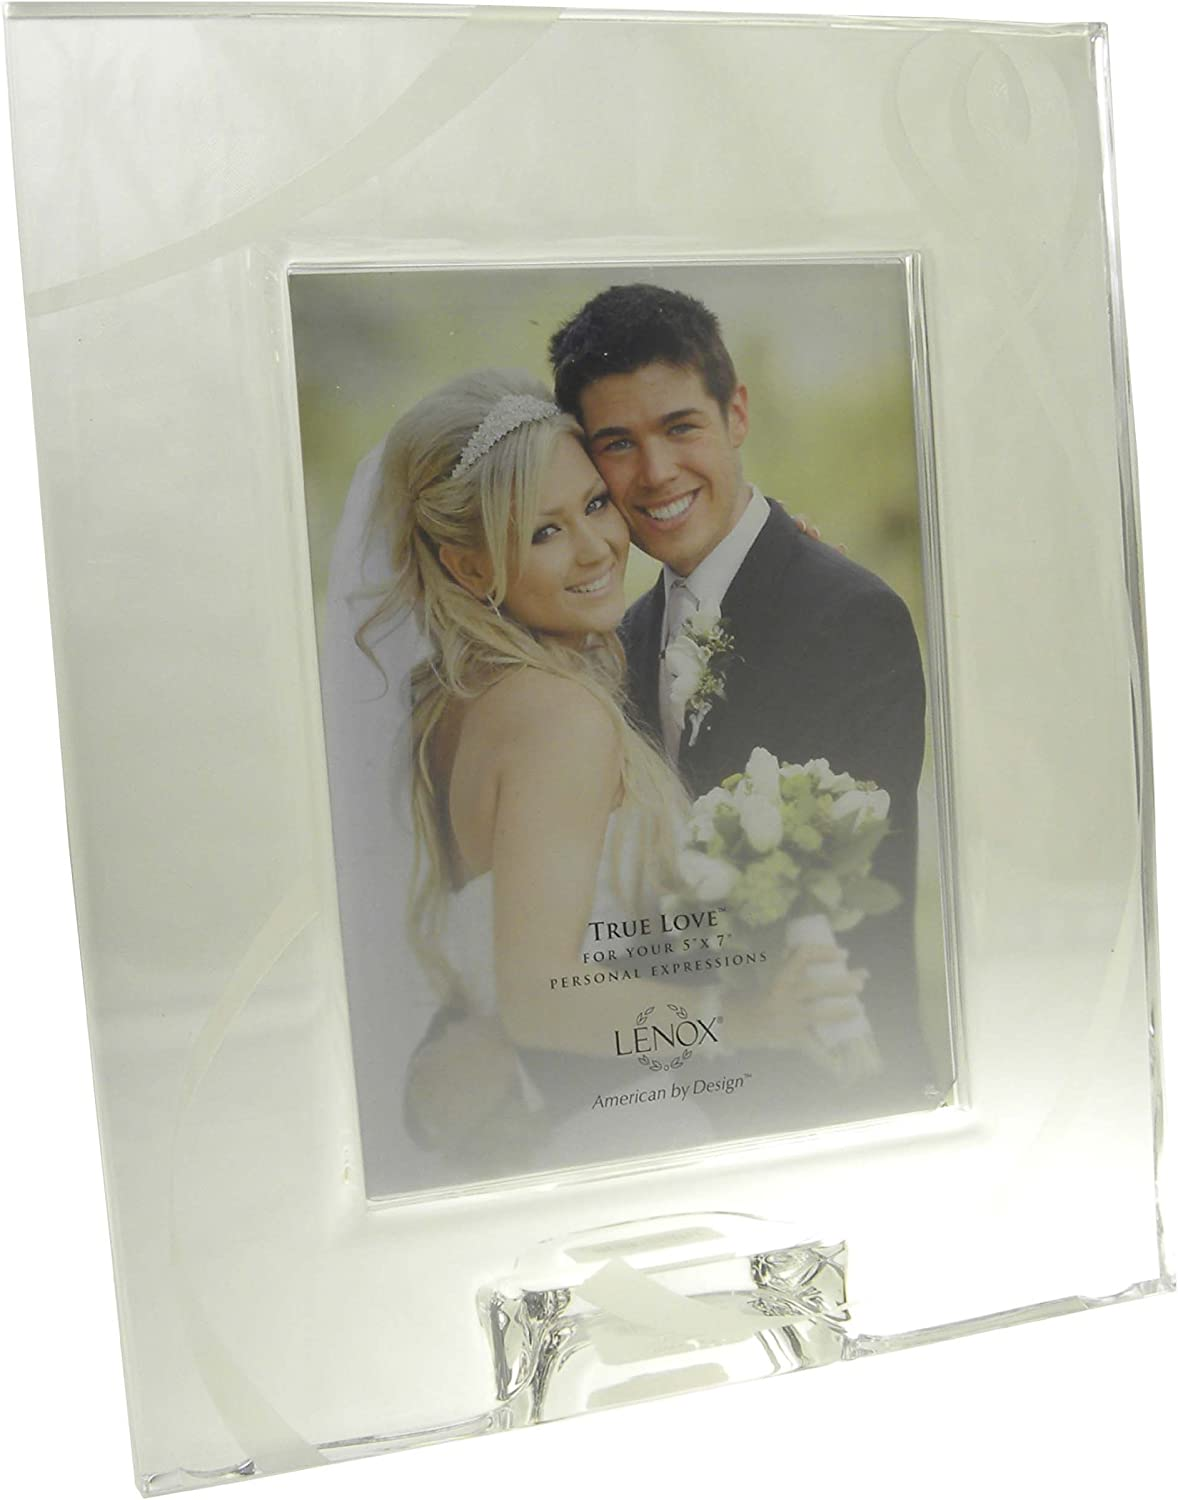 Lenox 5x7 Bear Frame Silver Accents Picture Frames